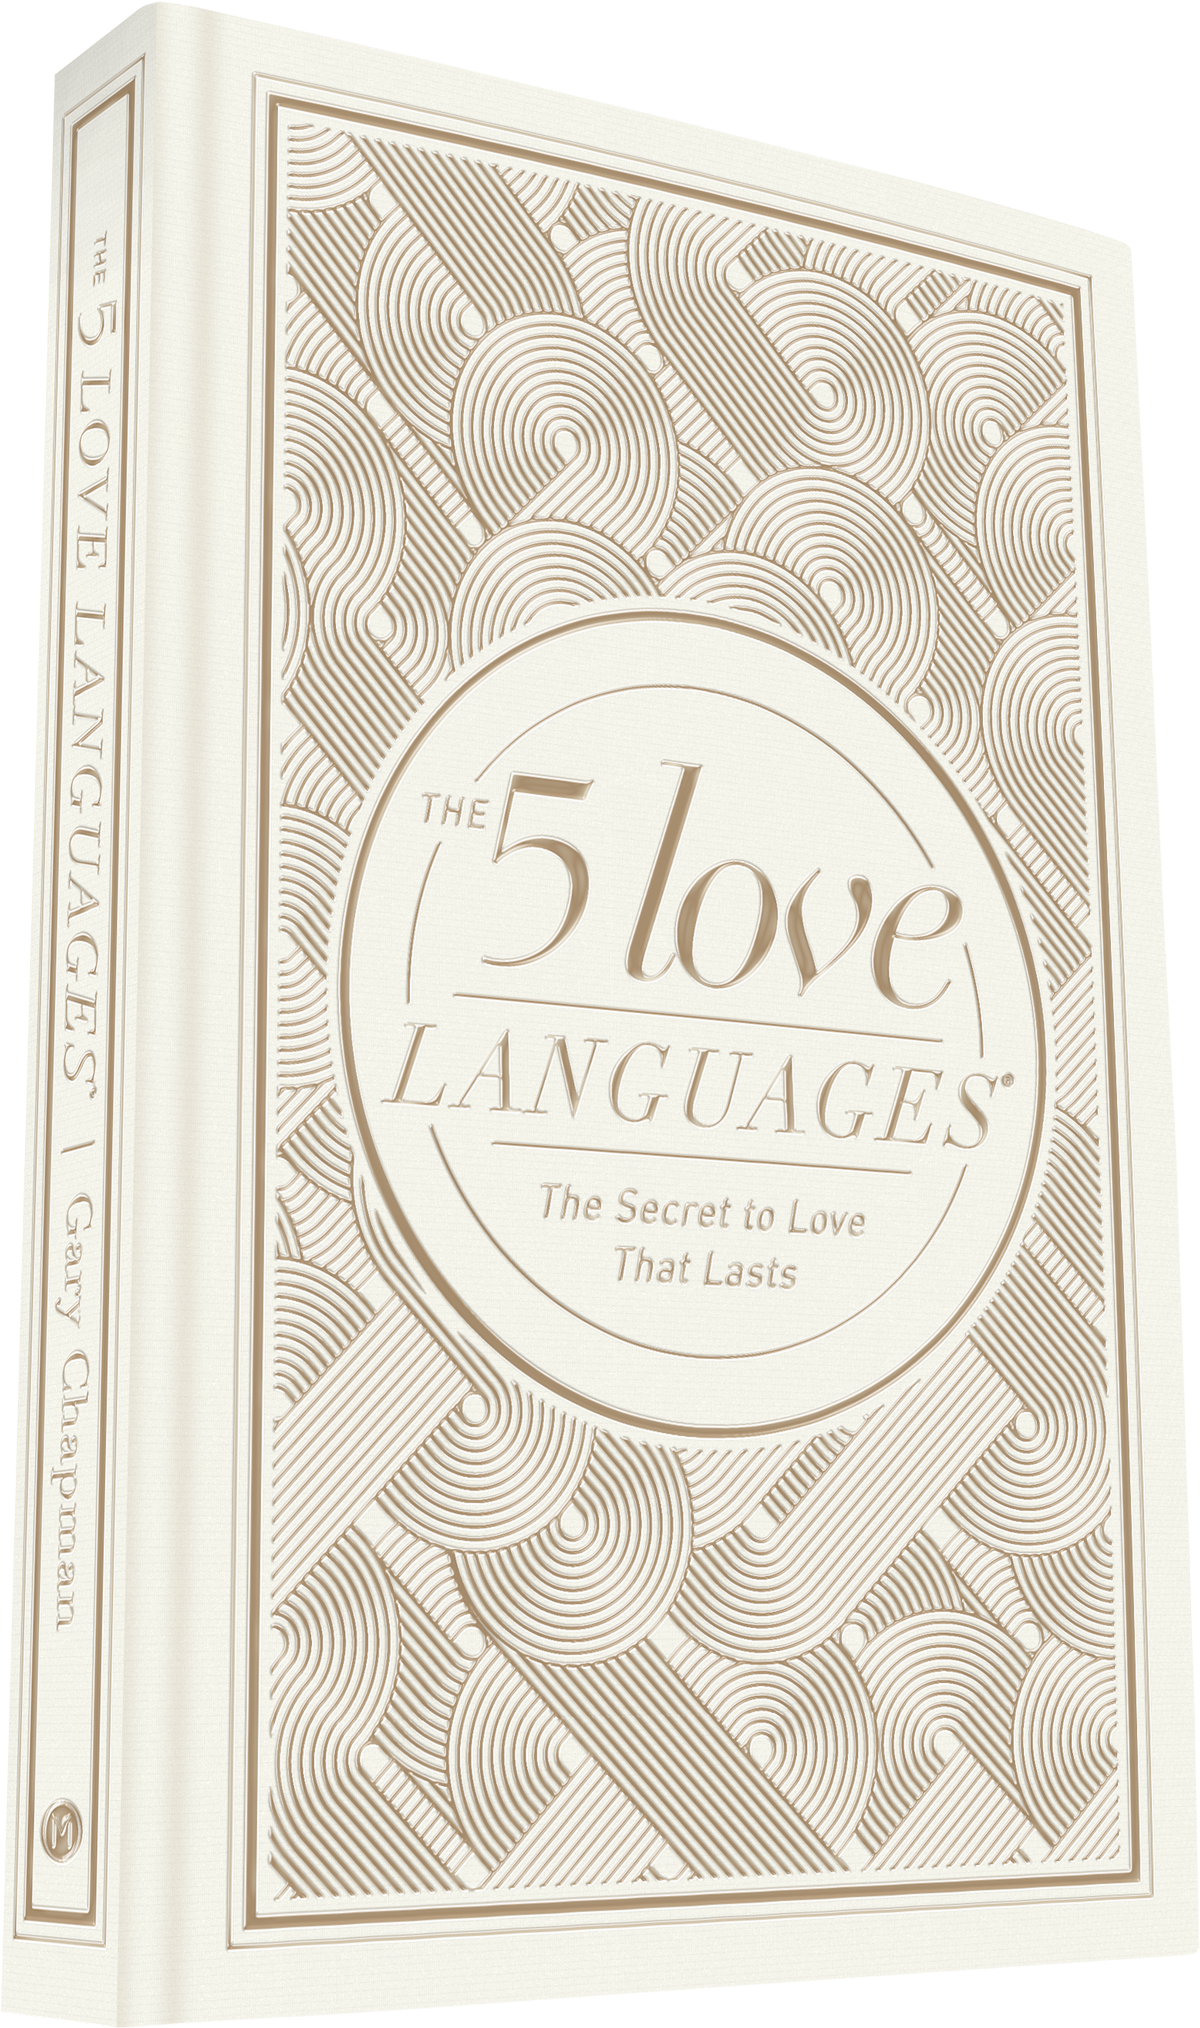 The 5 Love Languages Special Hardcover Edition